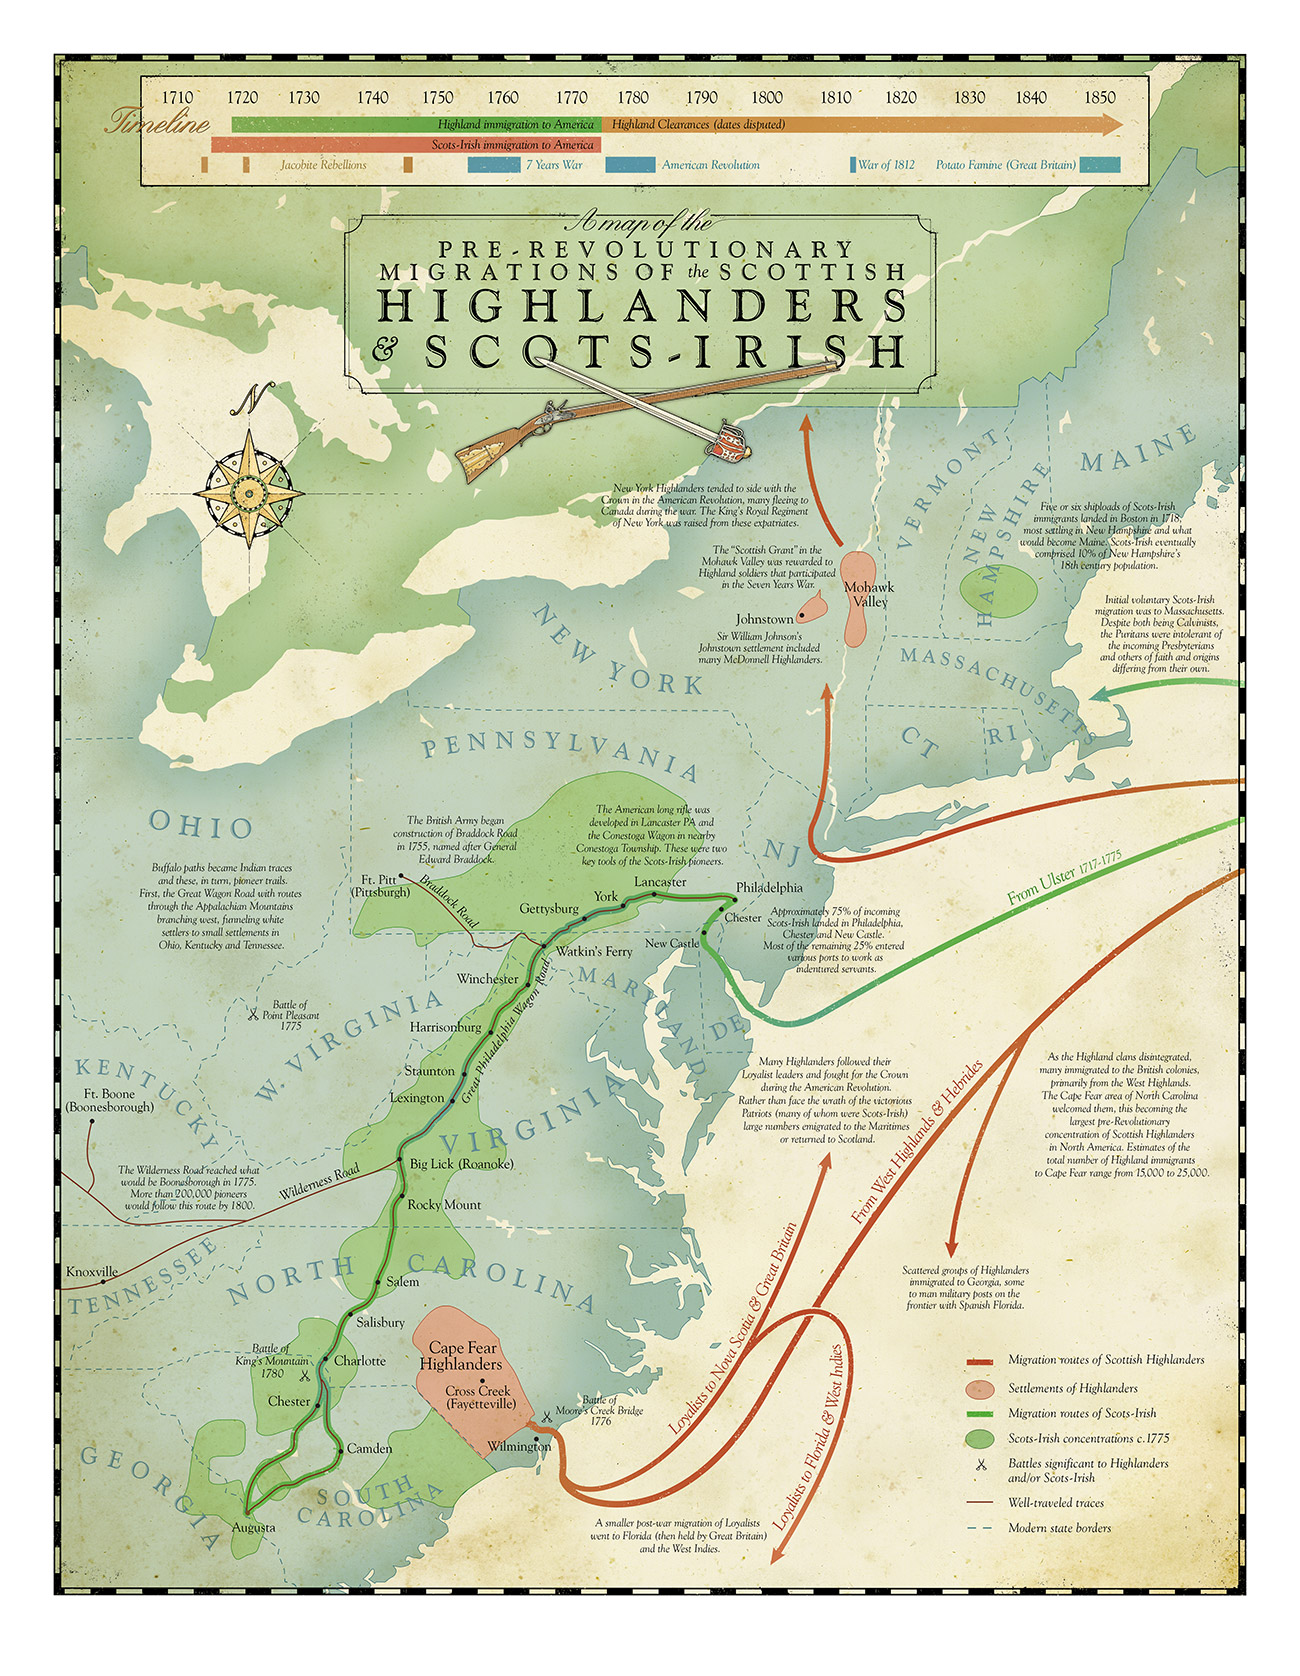 Map Of PrRevolutionary Highlander And ScotsIrish Migrations To - Map of american colonies